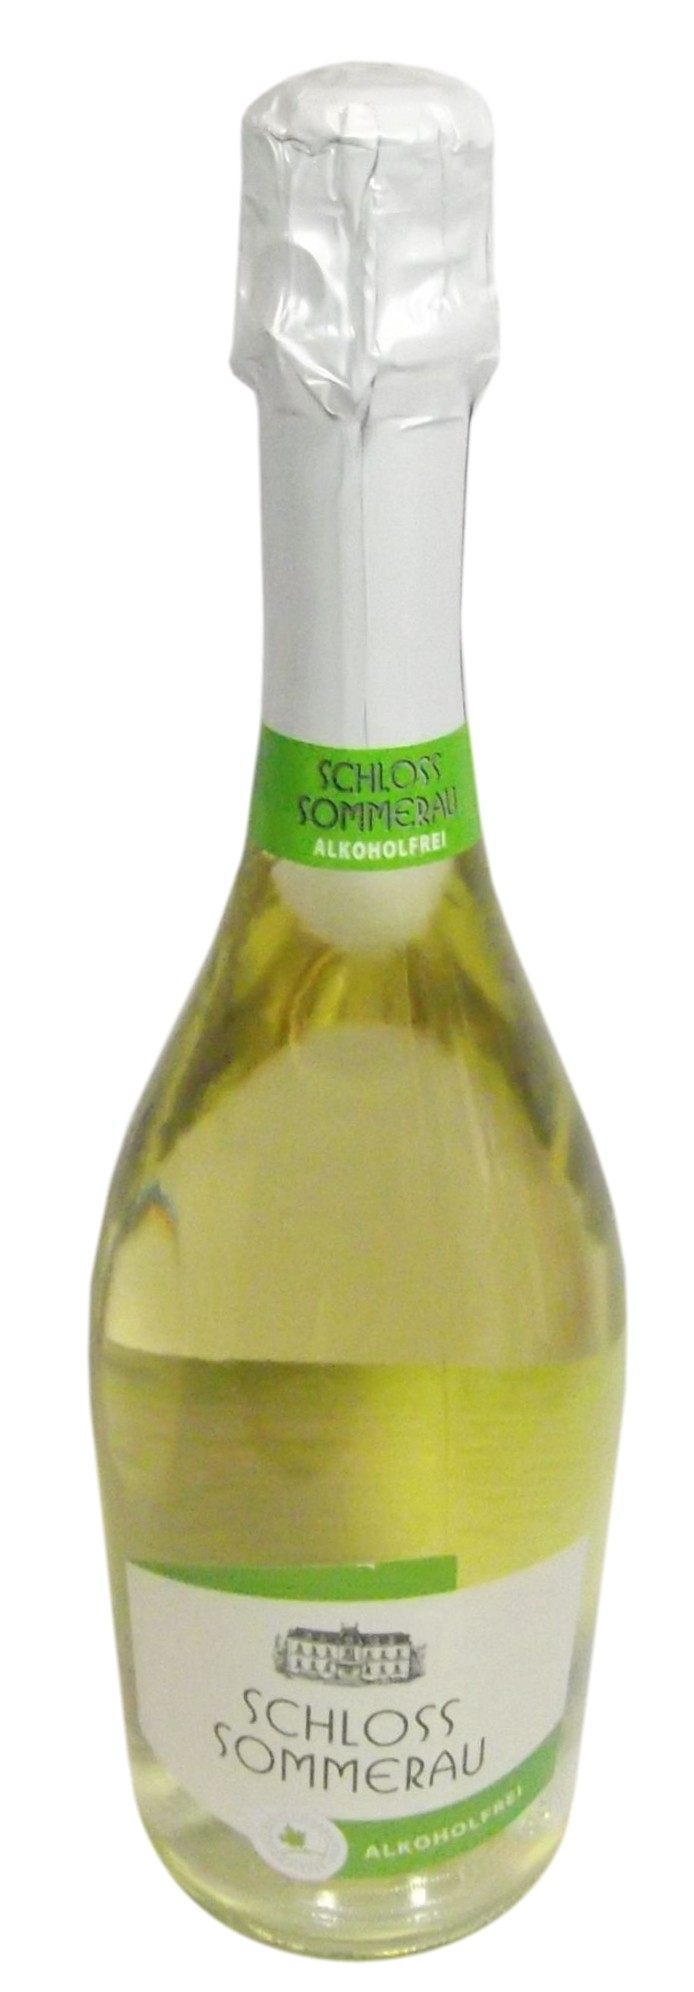 Alcohol Free Sparkling White Wine